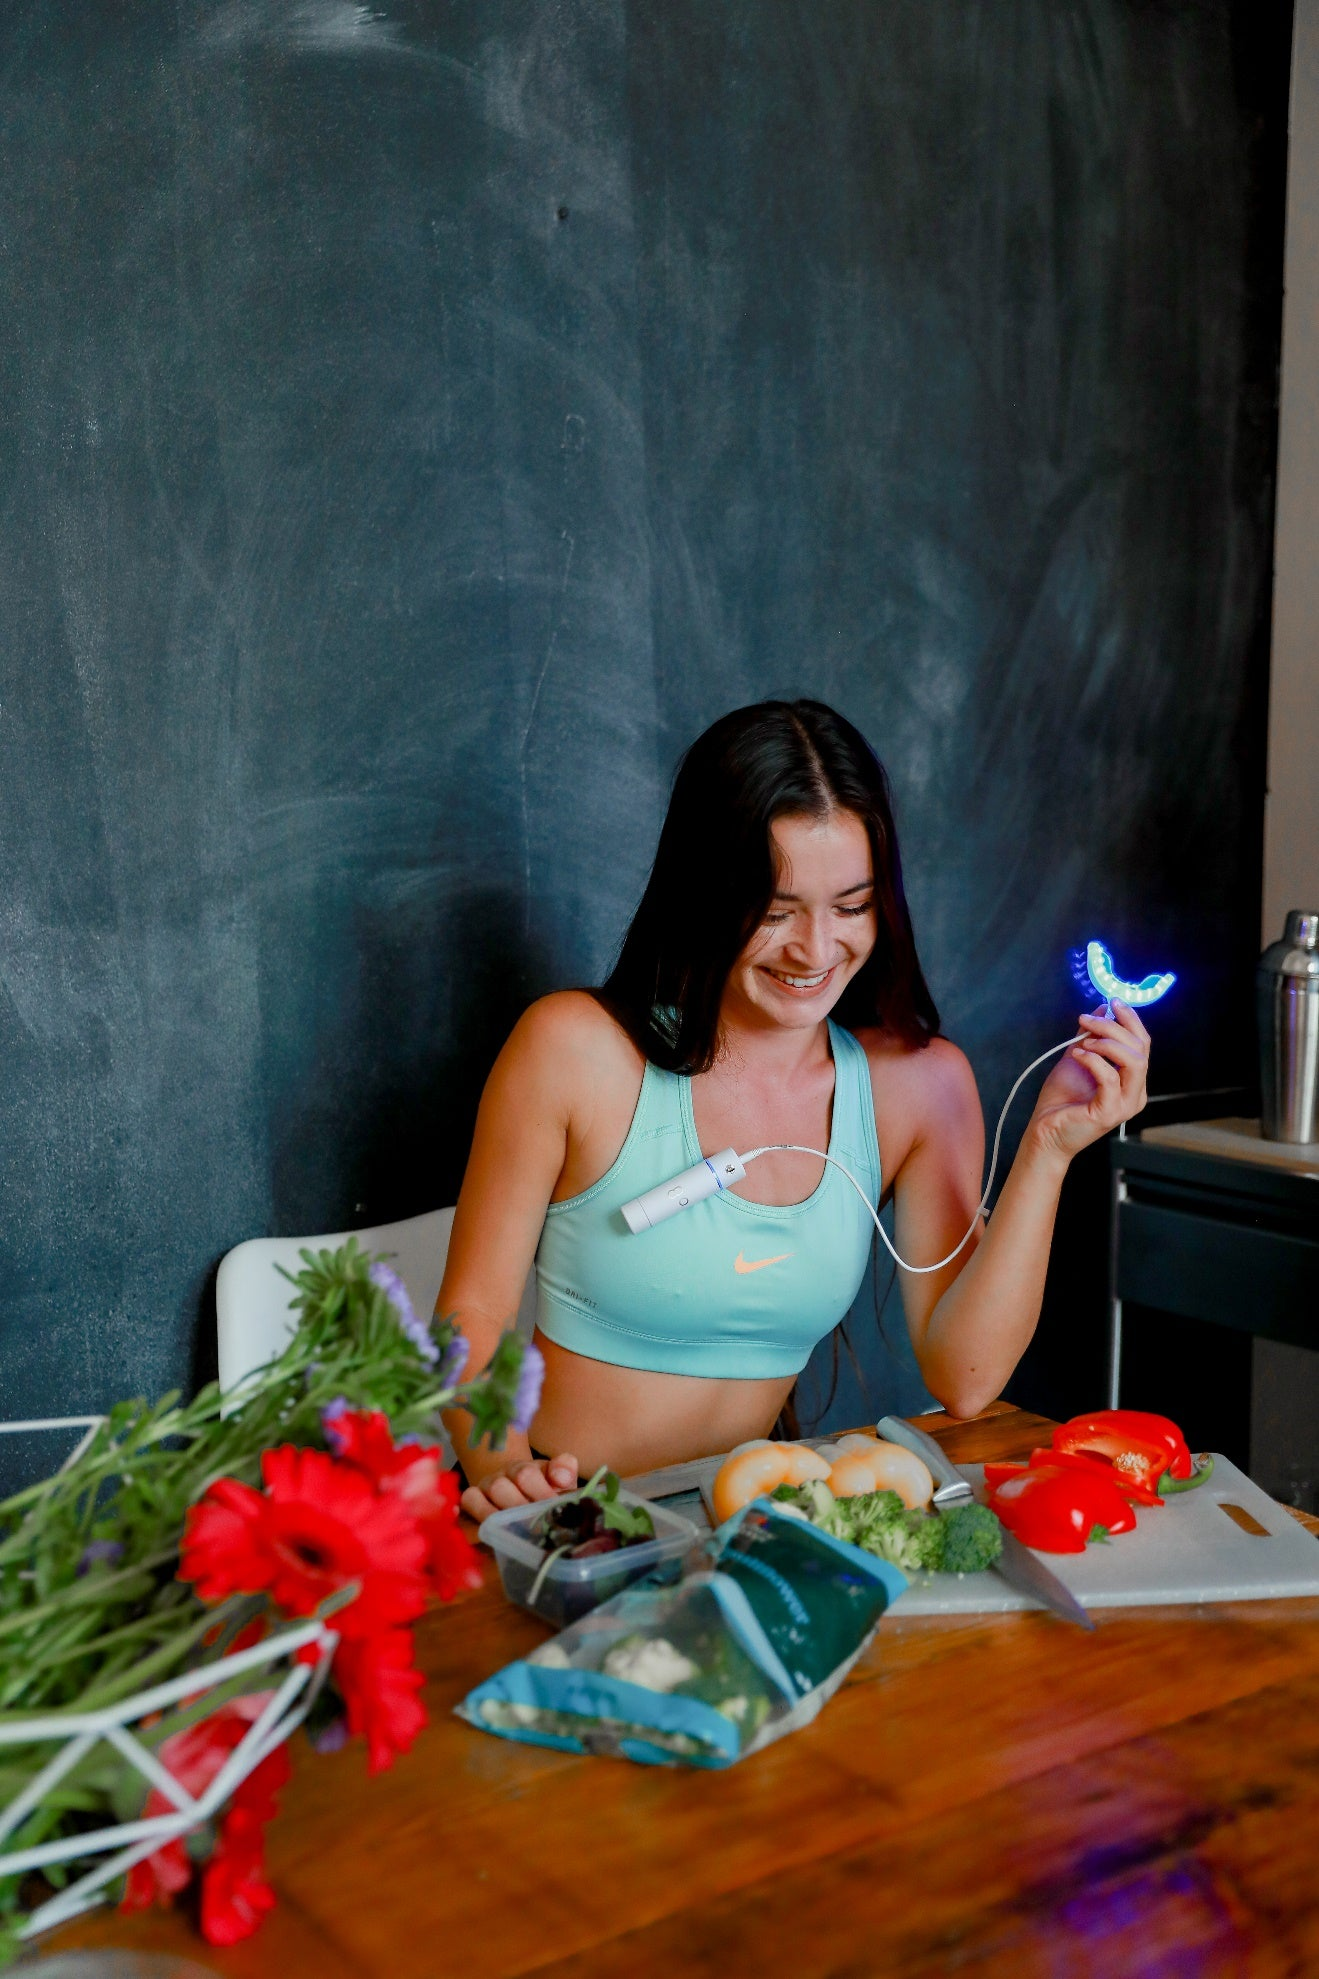 Smiling woman wearing athletic clothing sitting at table chopping vegetables and holding a GLO Lit teeth whitening device.